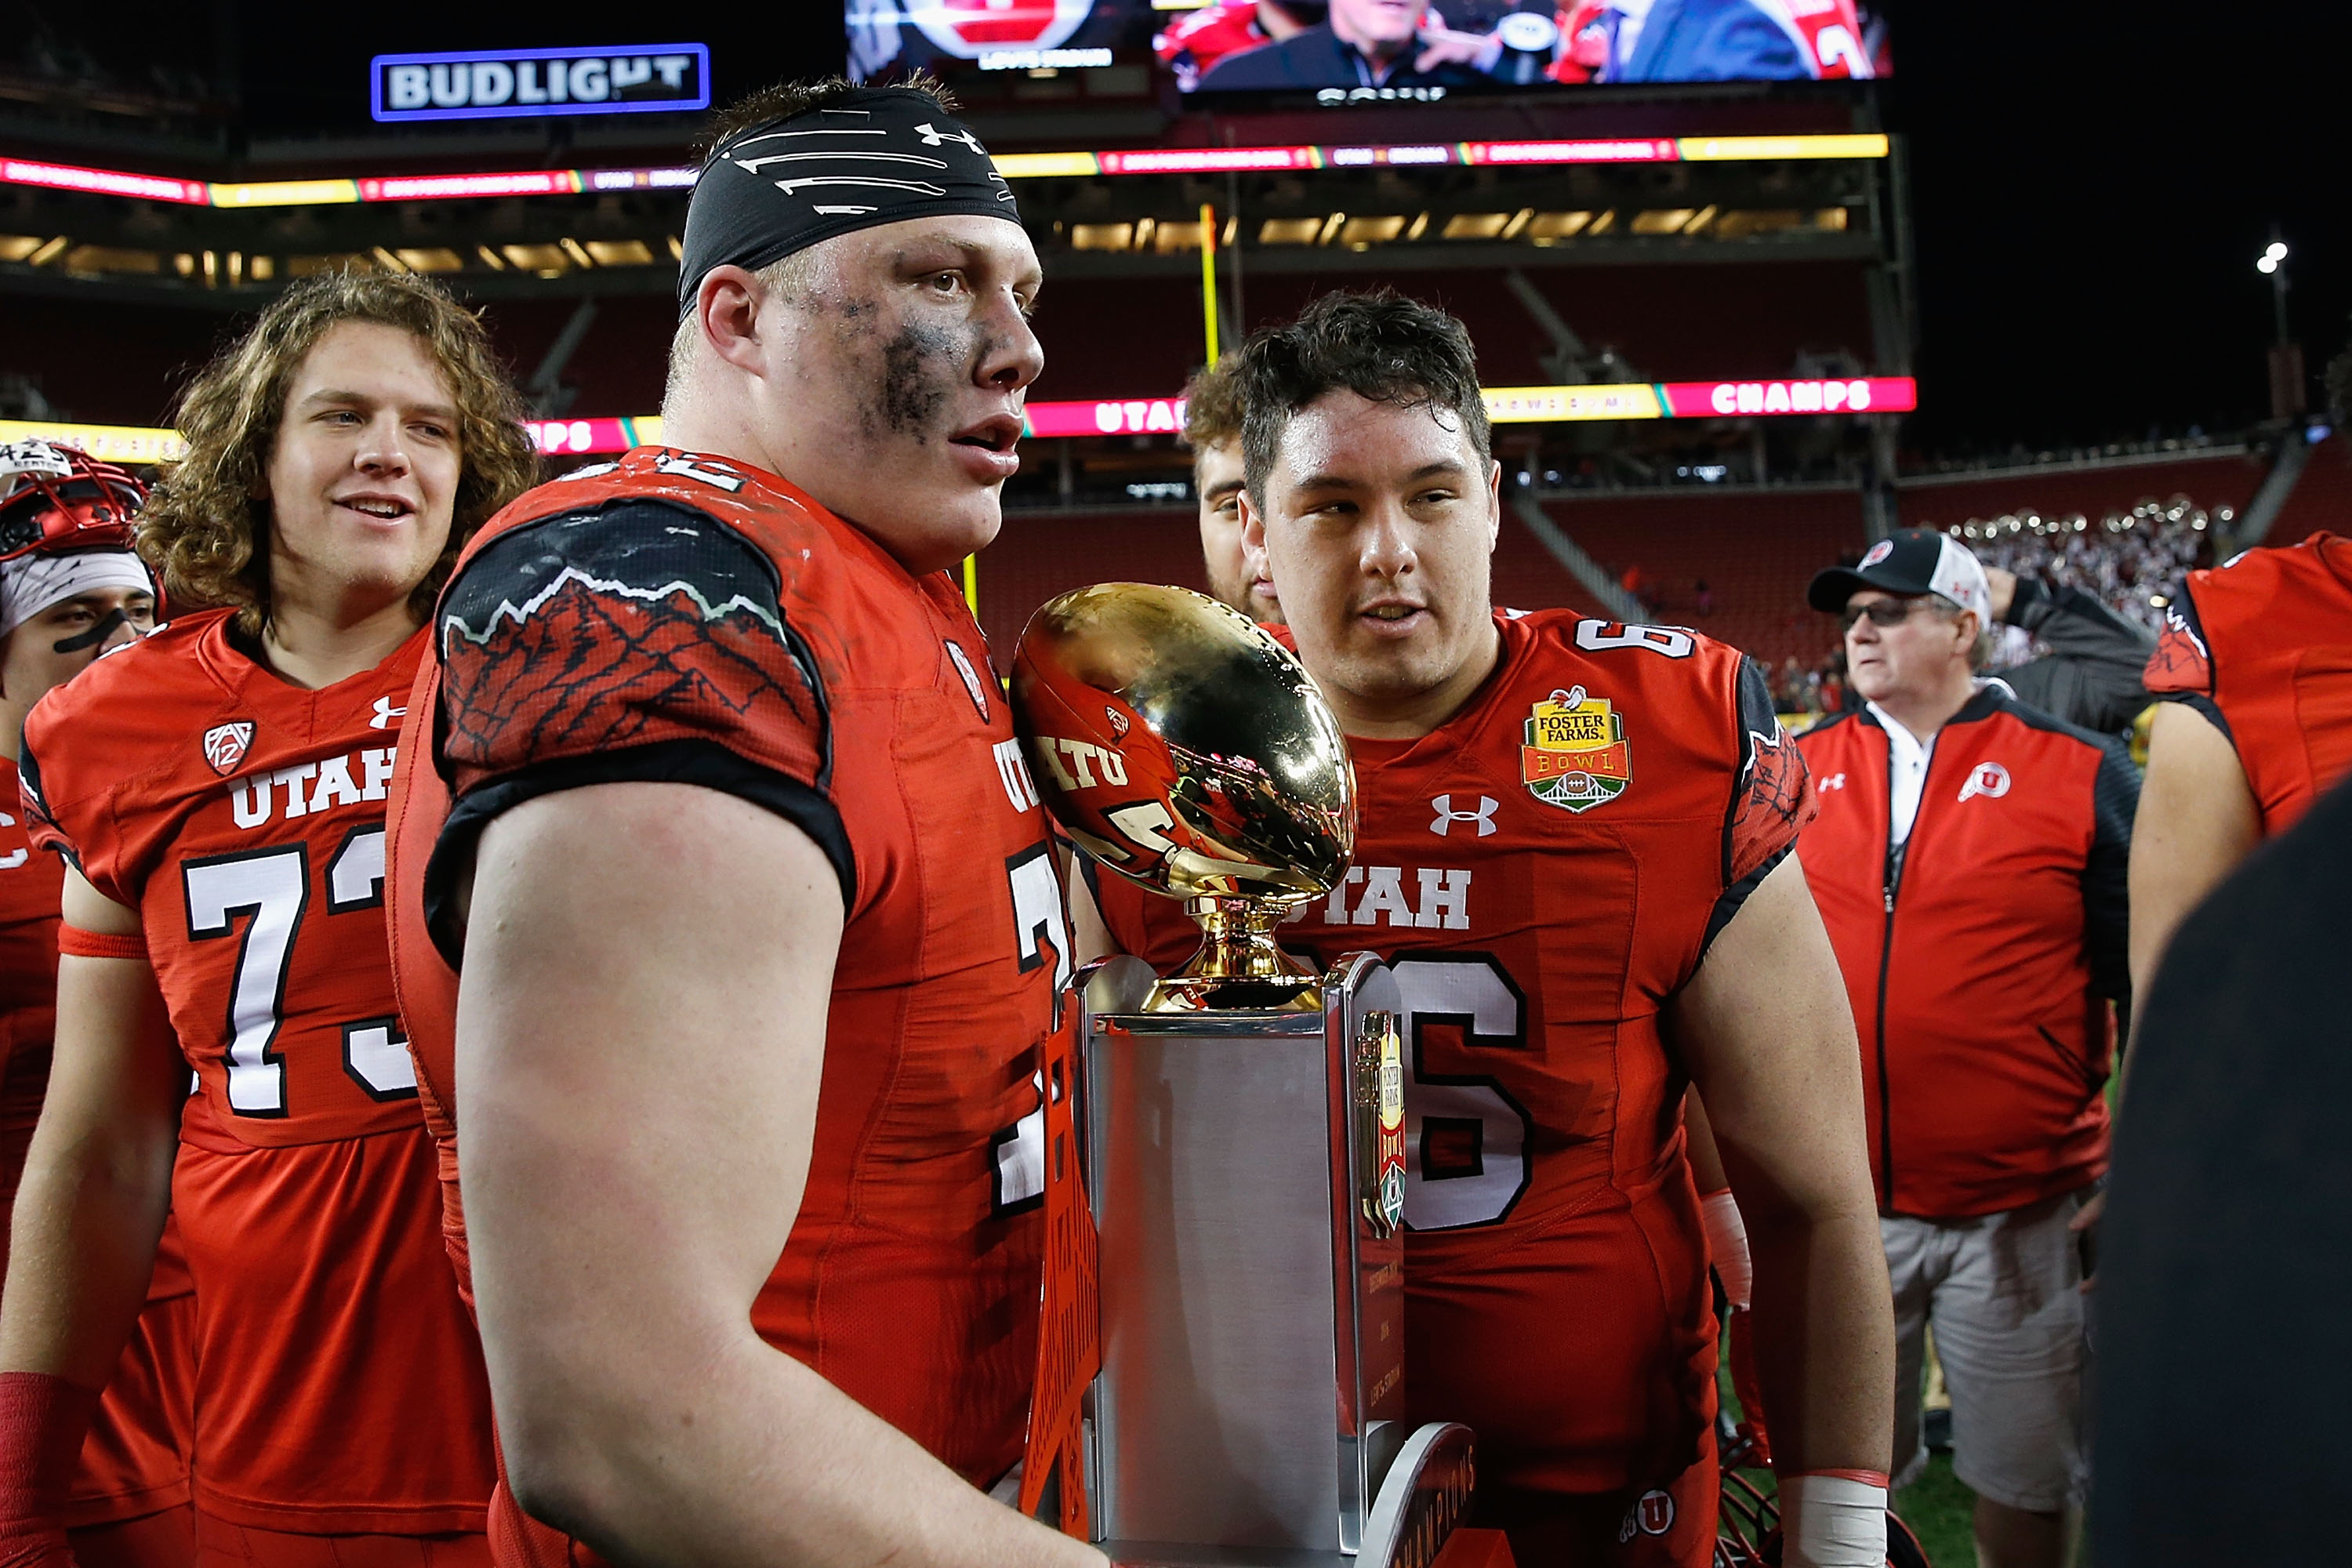 Garett Bolles of the Utah Utes with the trophy after a win against the Indiana Hoosiers in the Foster Farms Bowl game on December 28, 2016. (Photo by Lachlan Cunningham/Getty Images)